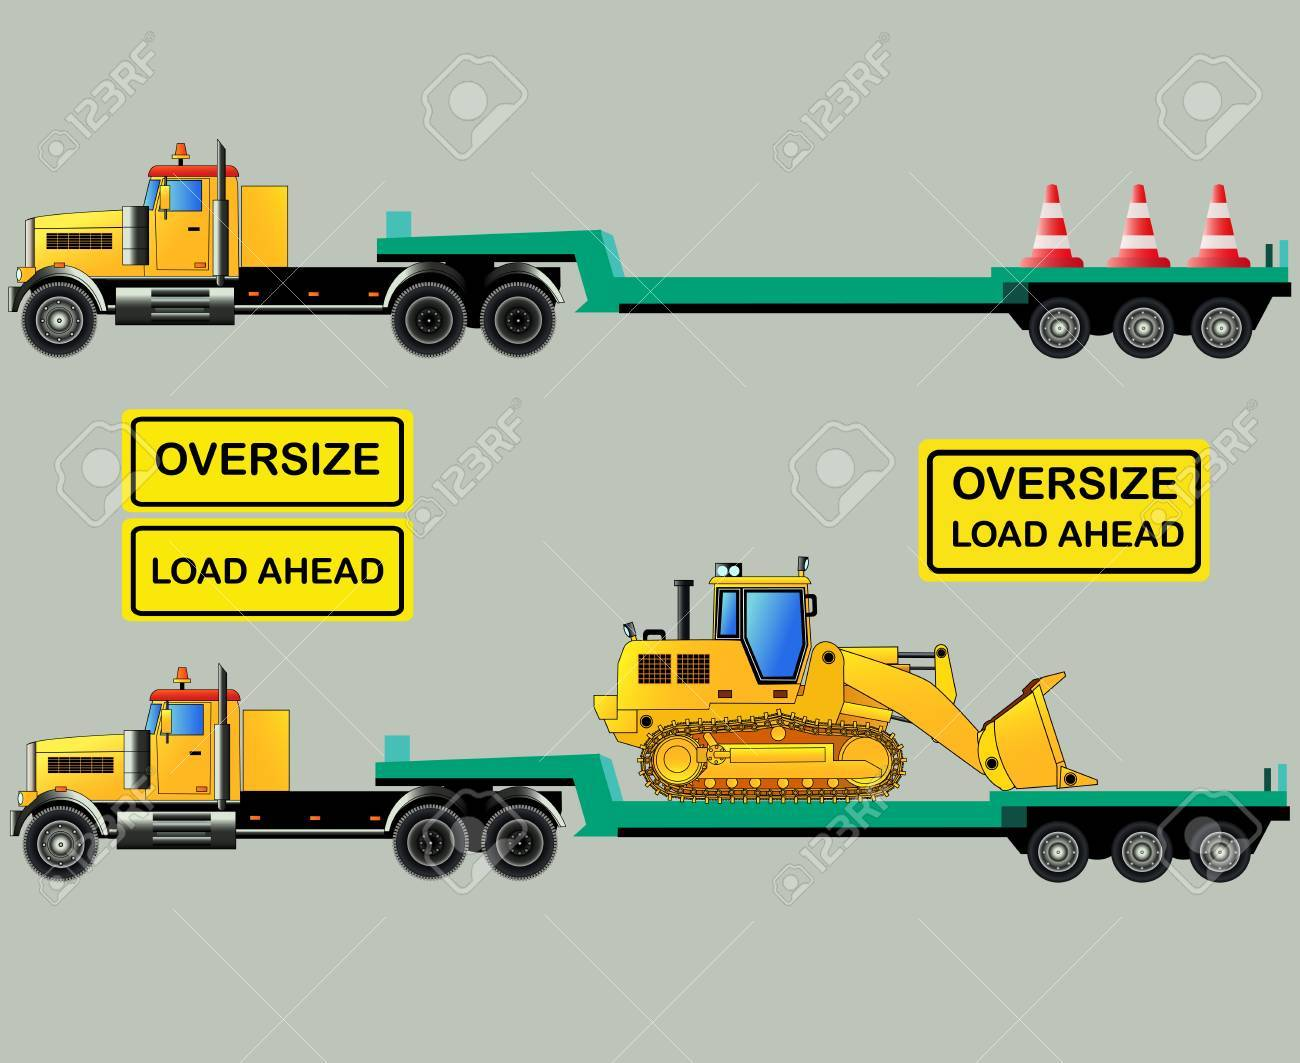 Oversize load truck with lowbody trailer and loader oversize load signs vector illustration